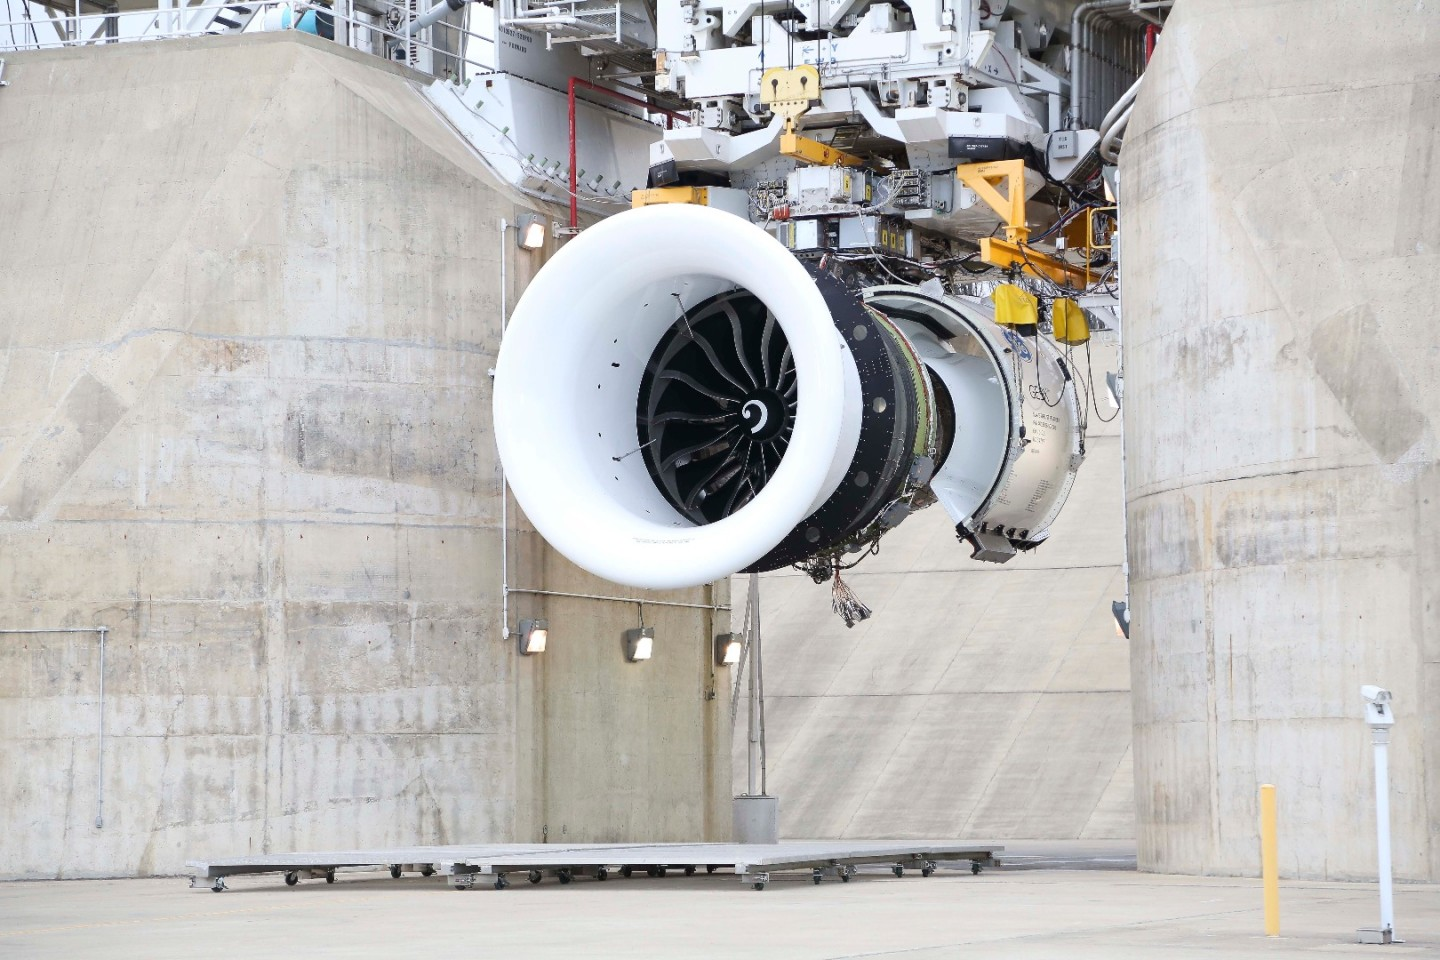 The GE9X in the test rig at GE Aviation testing facility